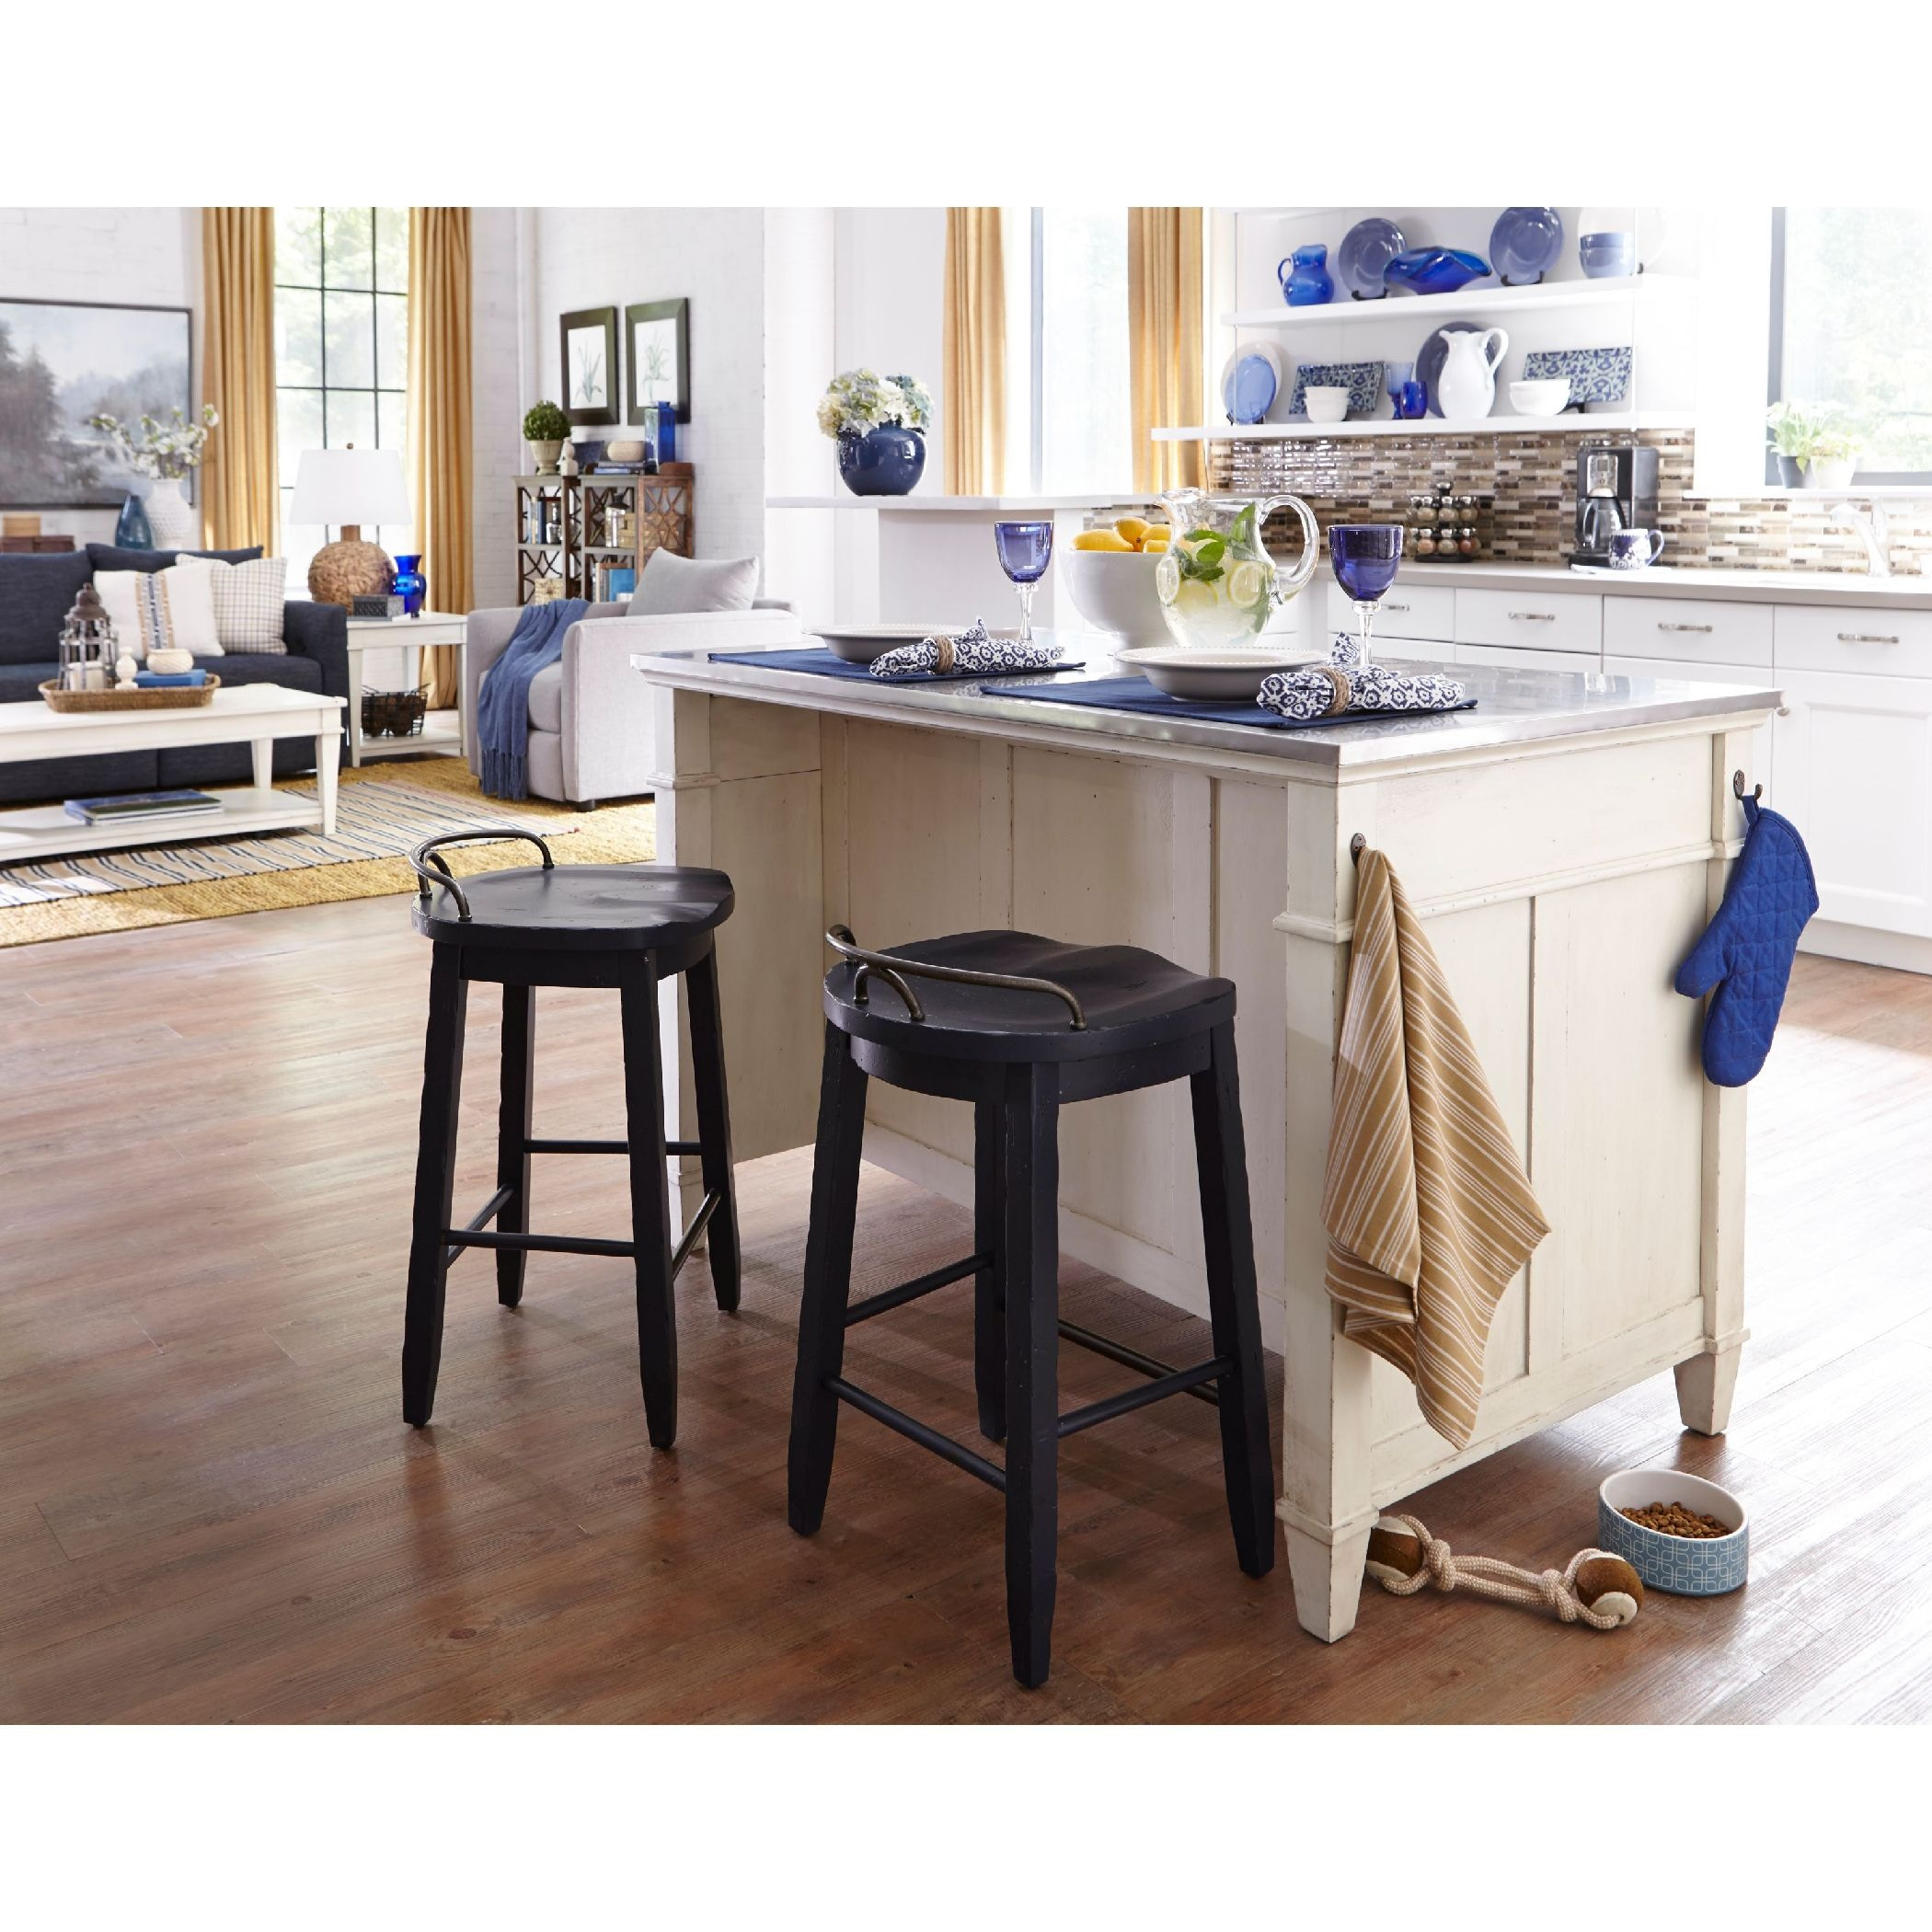 Trisha Yearwood   Cowboy Stool   BLUE ST:448232